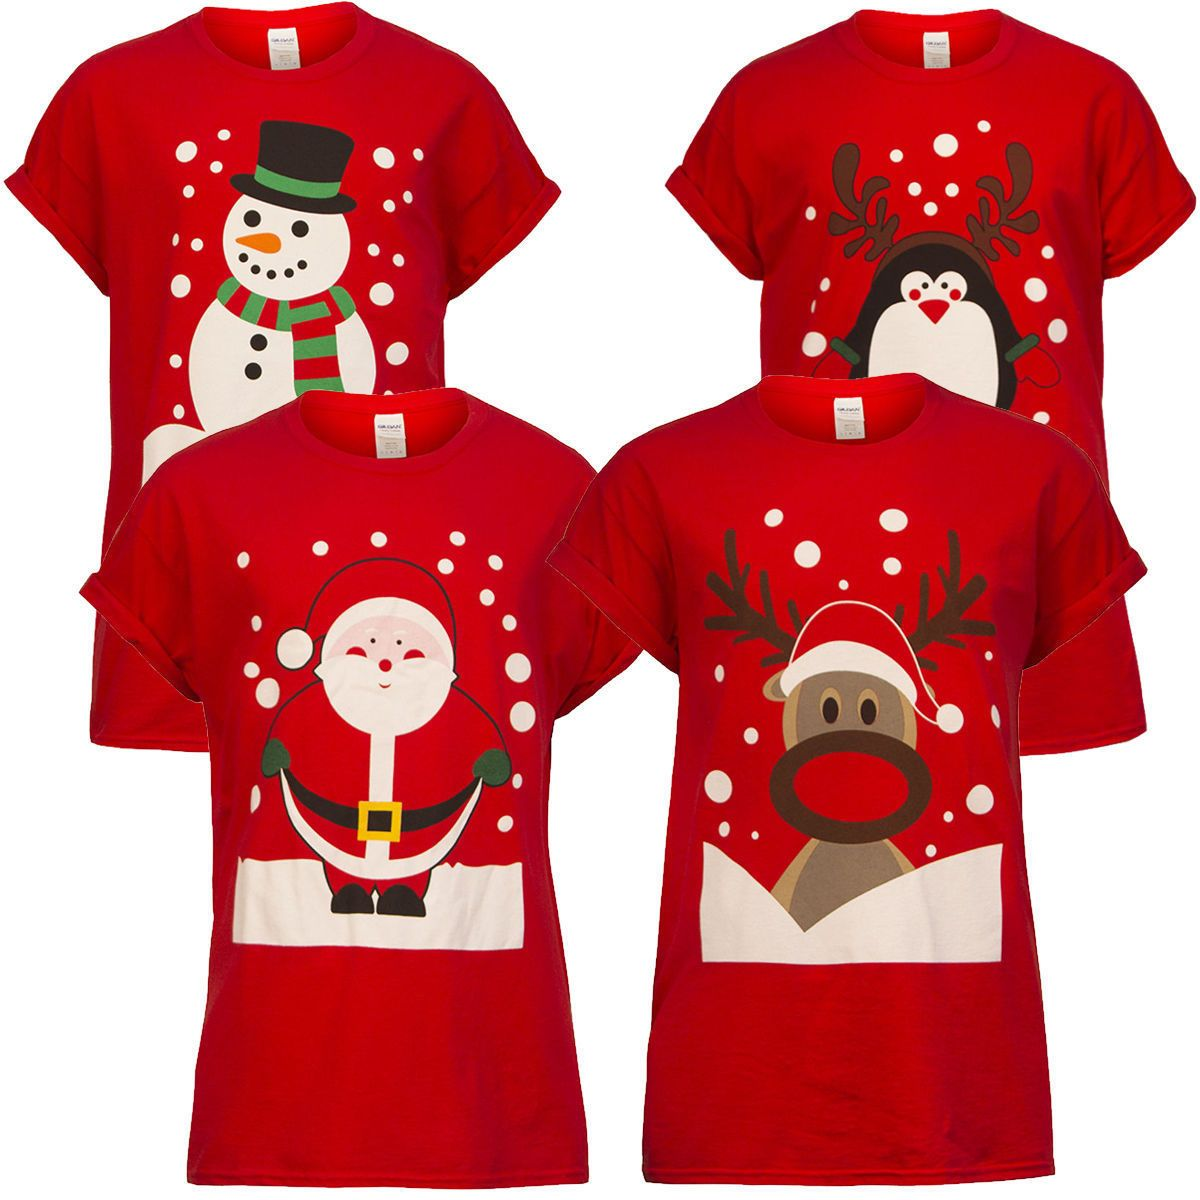 Warm Family Matching Christmas T-Shirts